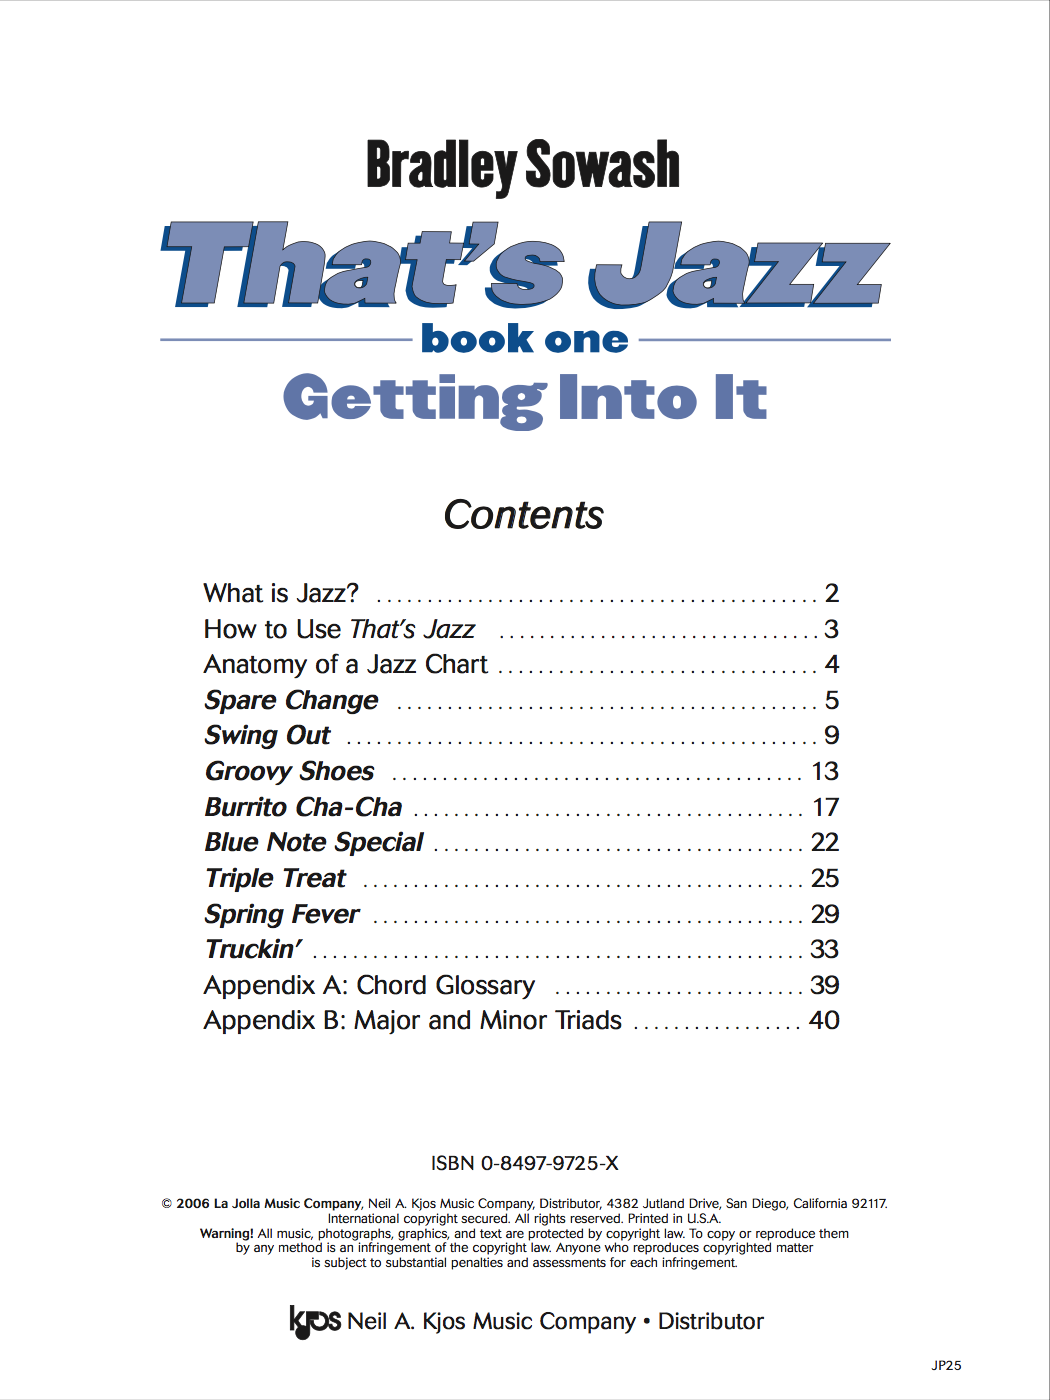 That's Jazz Method 1 - Getting Into It - hard copy — Bradley Sowash Music